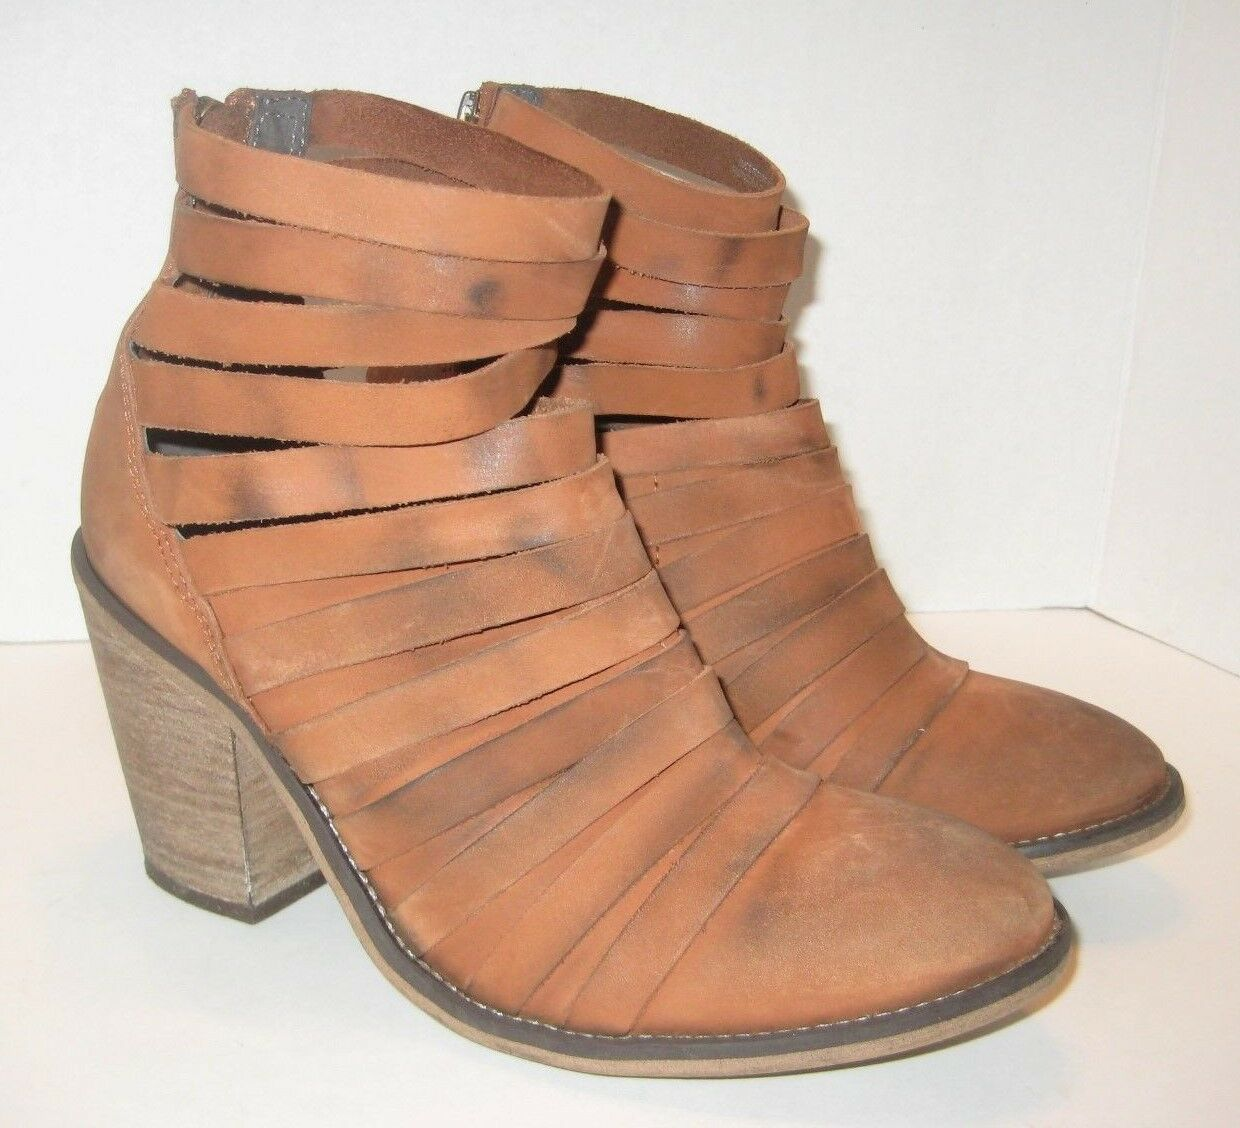 FREE PEOPLE HYBRID STRAPPY LEATHER BOOTIE BOOT TERRACOTTA LEATHER SIZE 8US  38EU